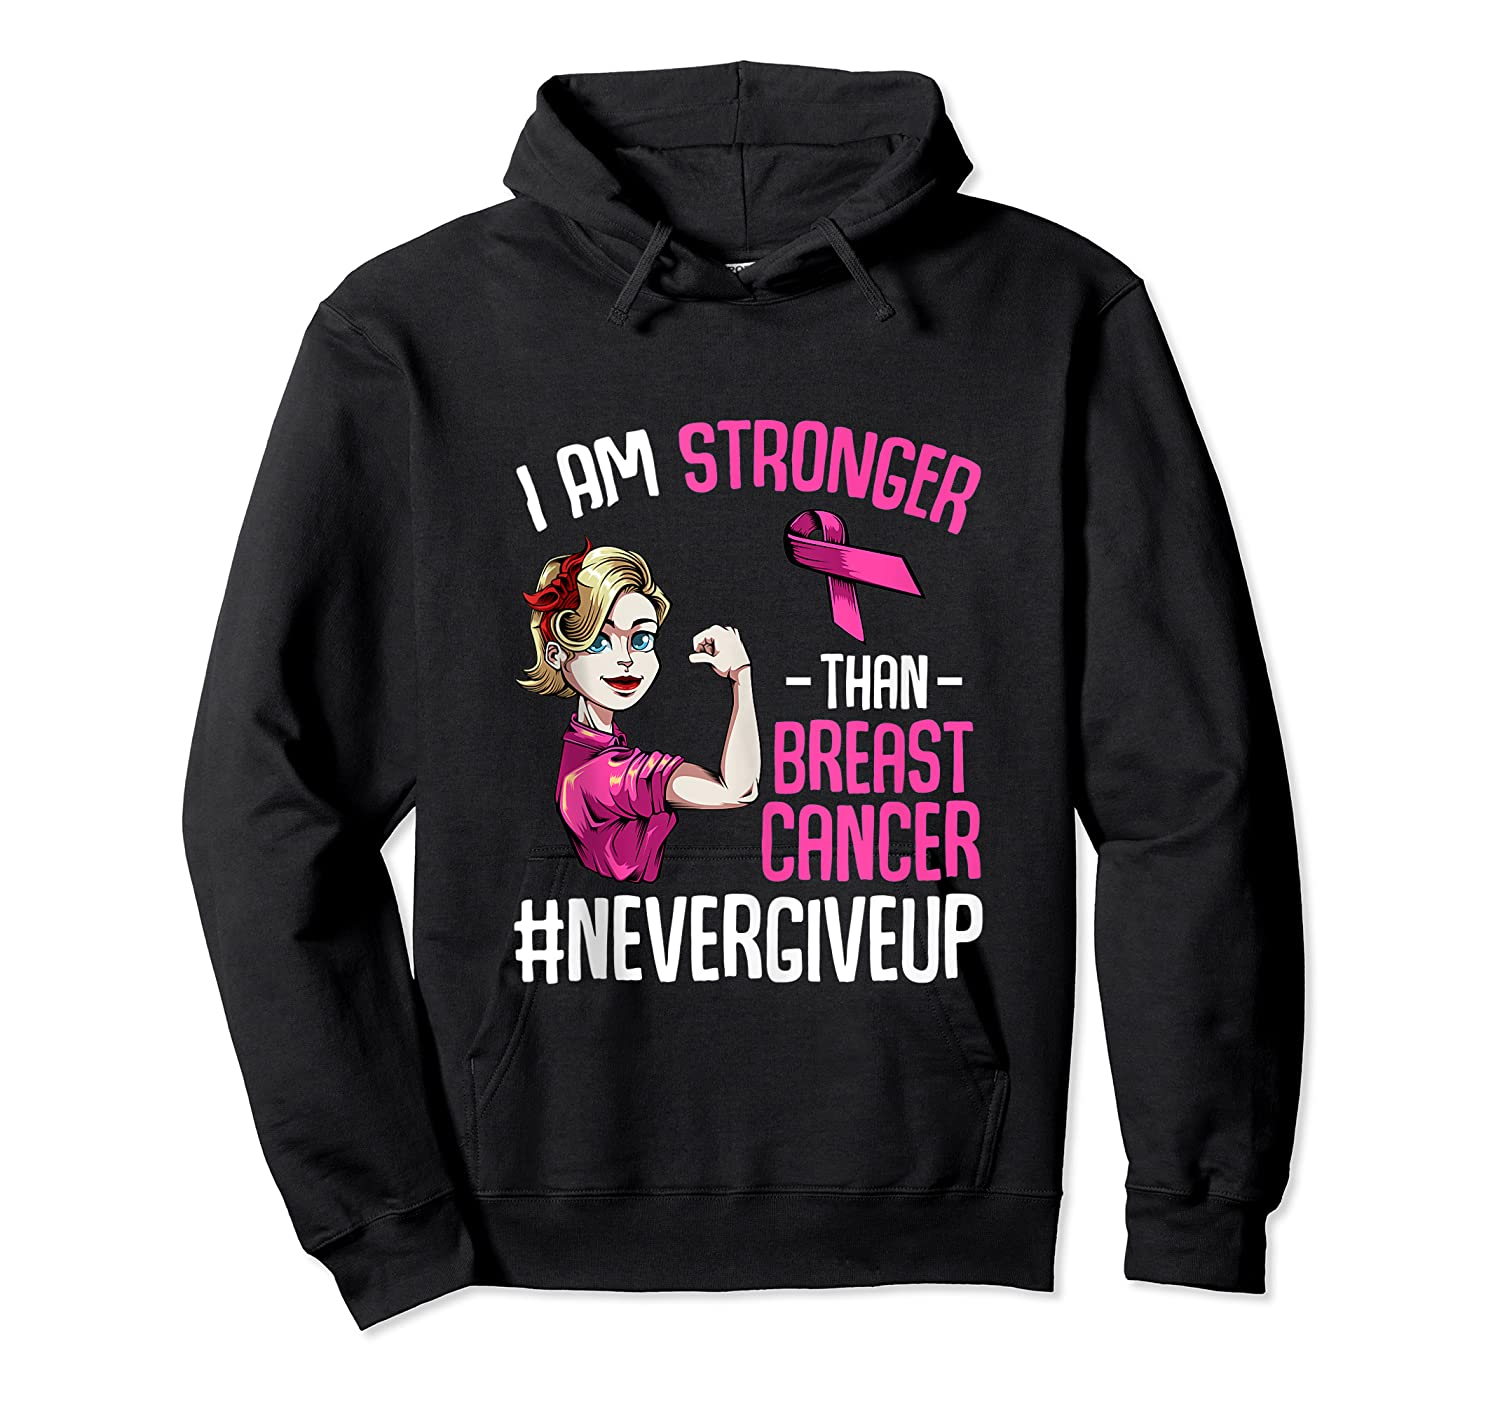 Breast Cancer Awareness Month Shirt For I Am Stronger Tank Top Unisex Pullover Hoodie